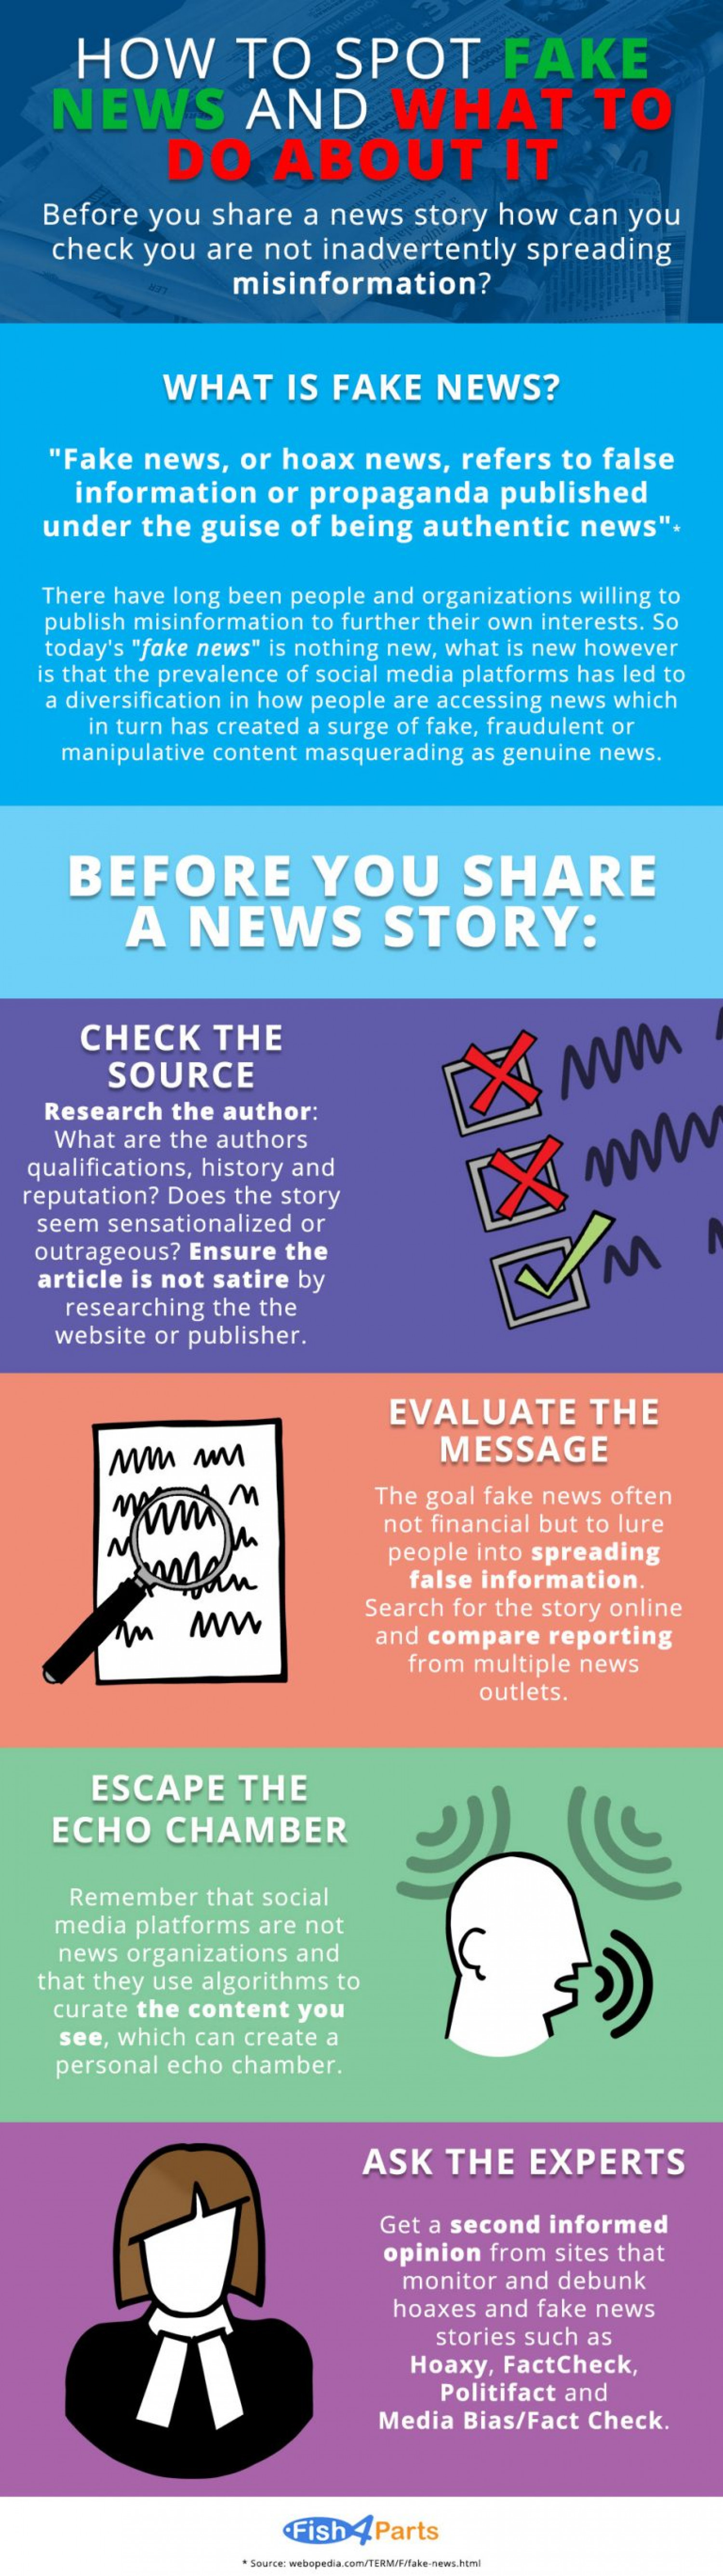 How to Spot Fake News and What to do About It Infographic